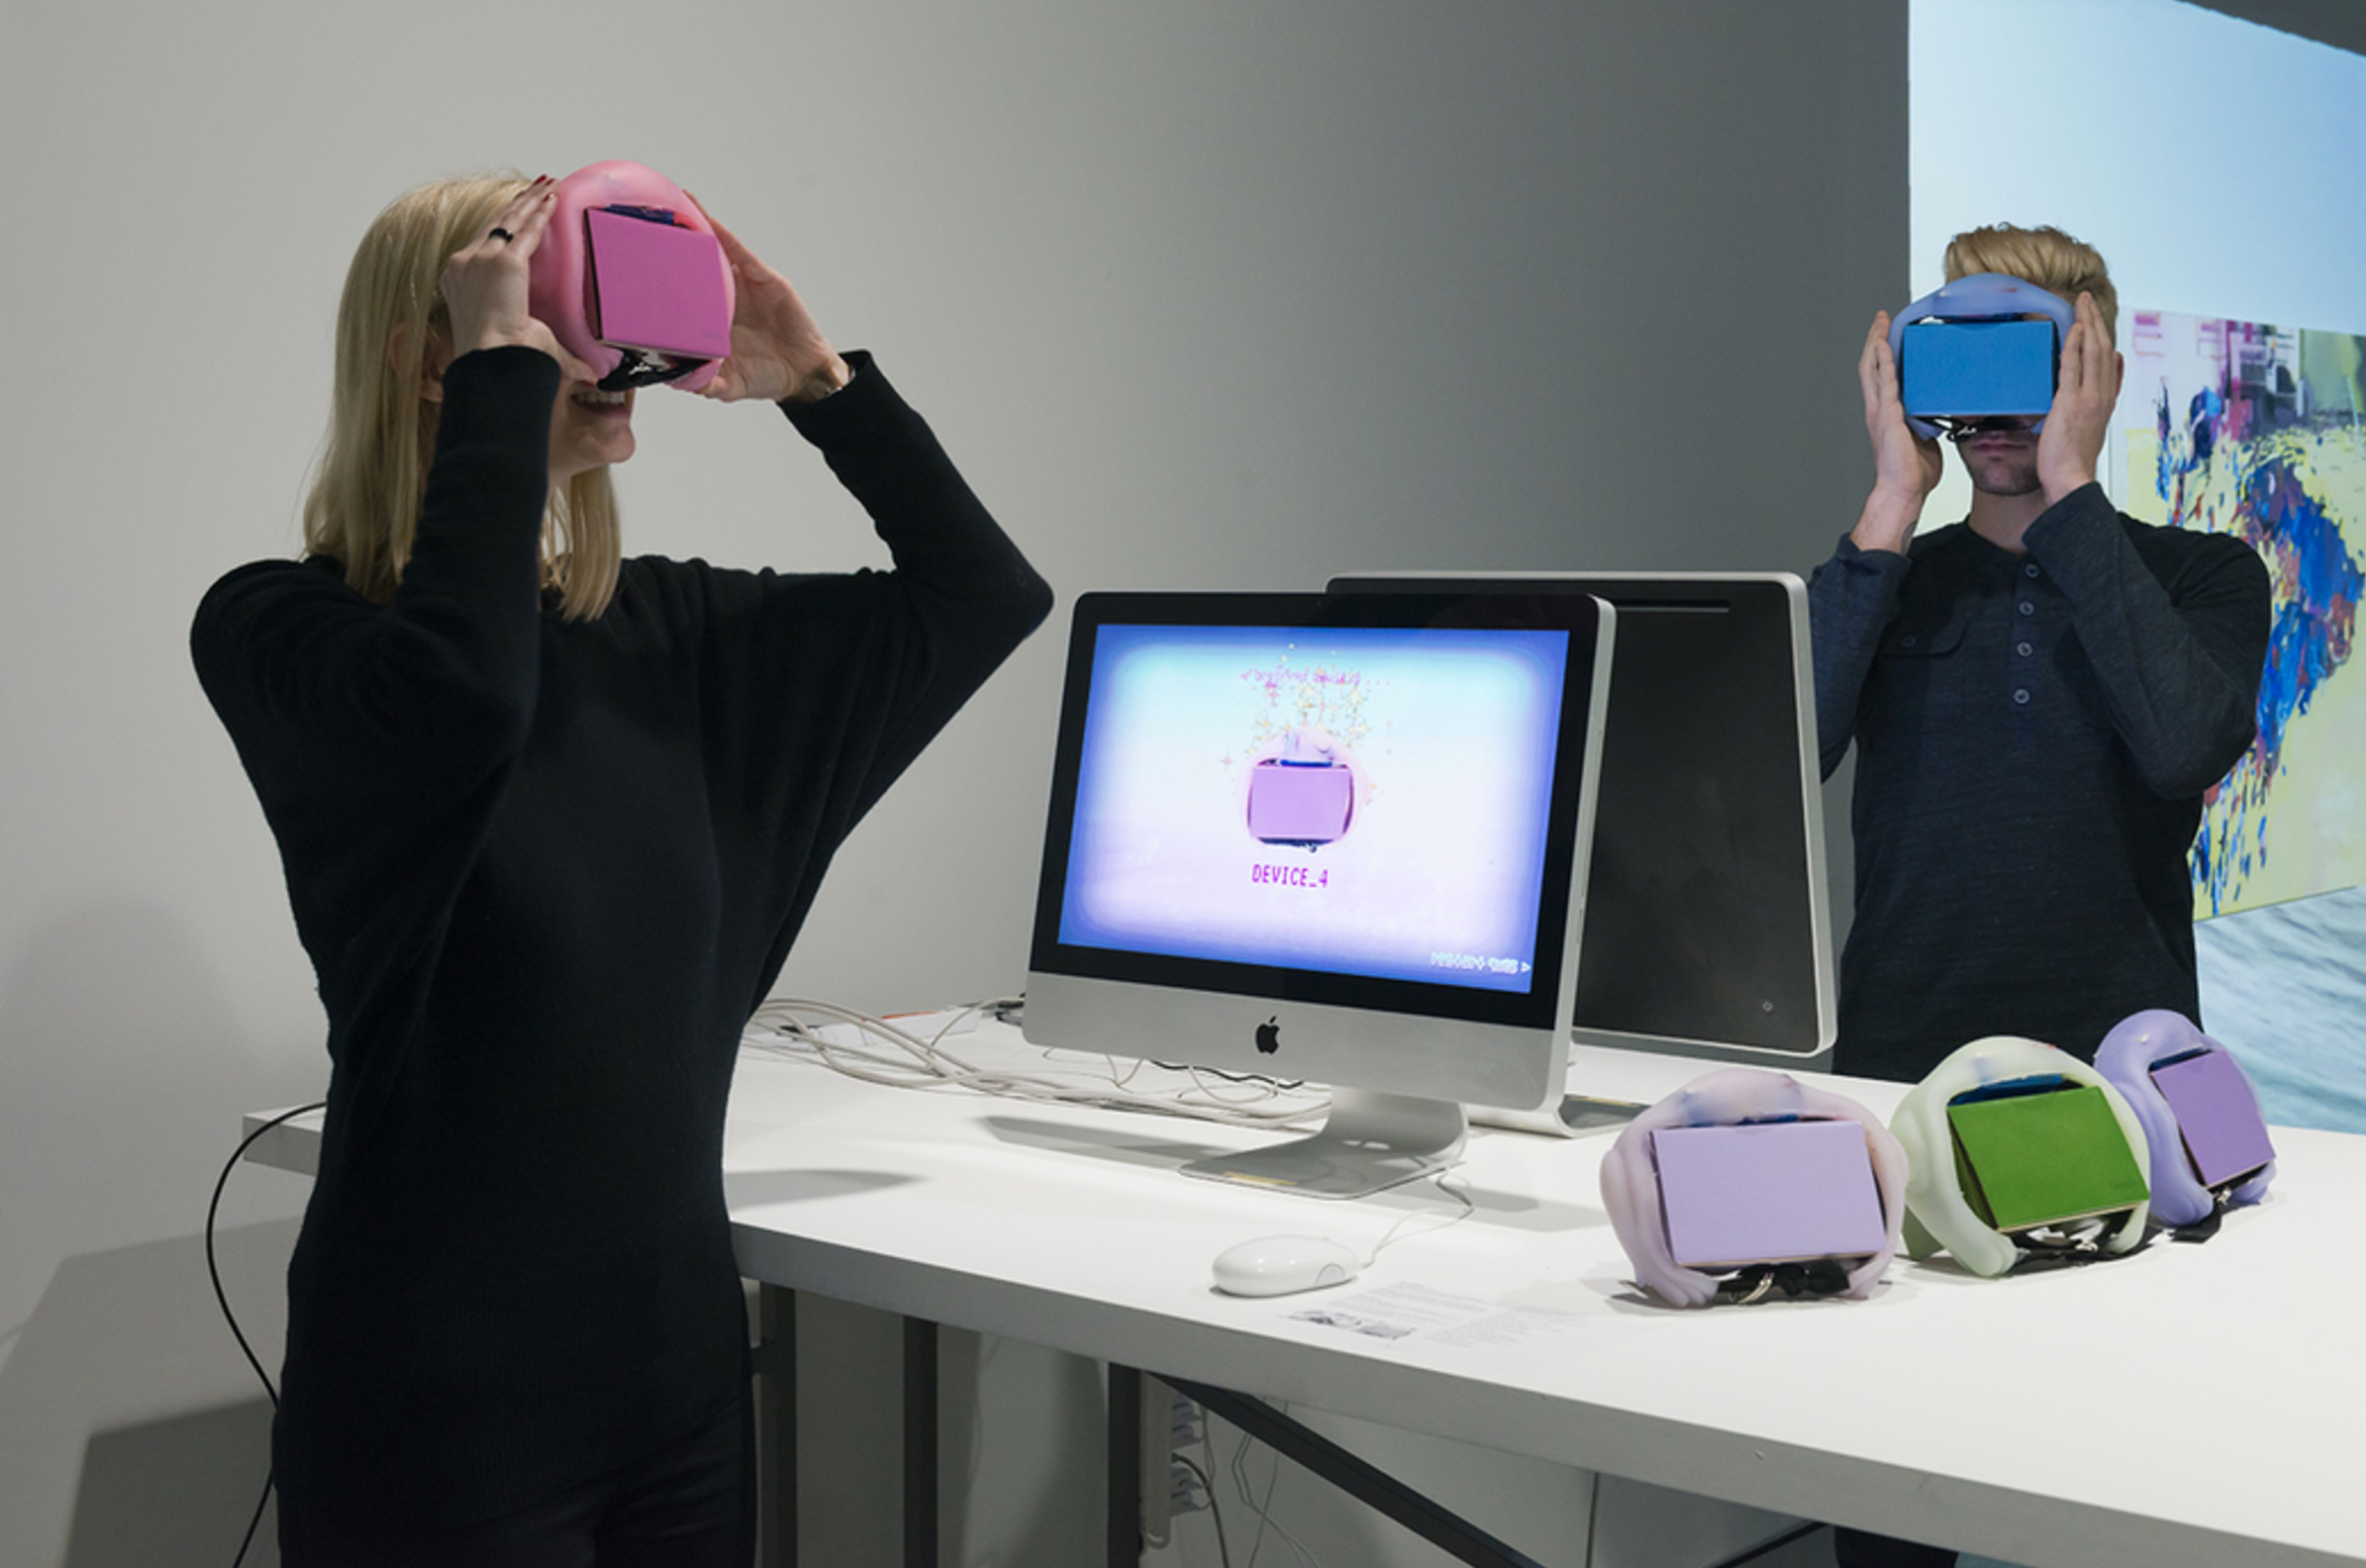 Two people play with VR headsets encased in silicone.